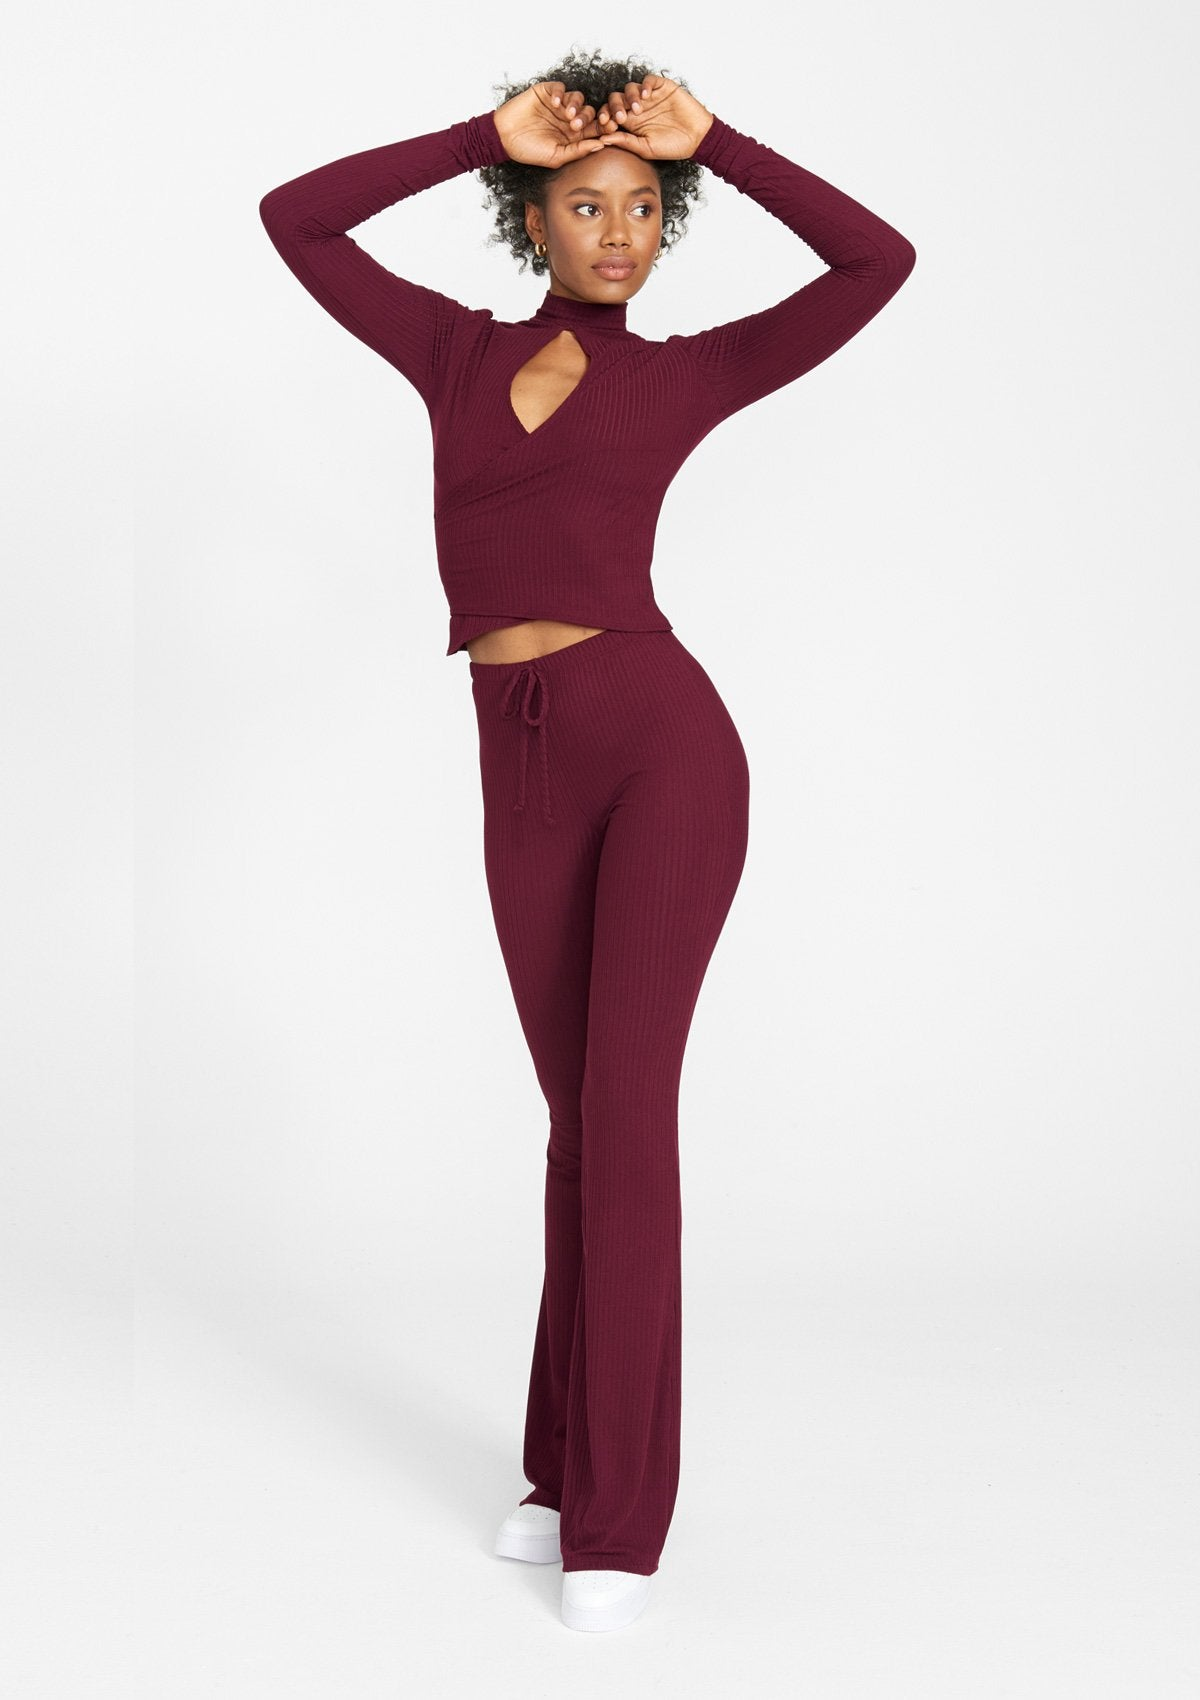 Alloy Apparel Tall Elana Tie Rib Knit Pants for Women in Wine Size S   Polyester